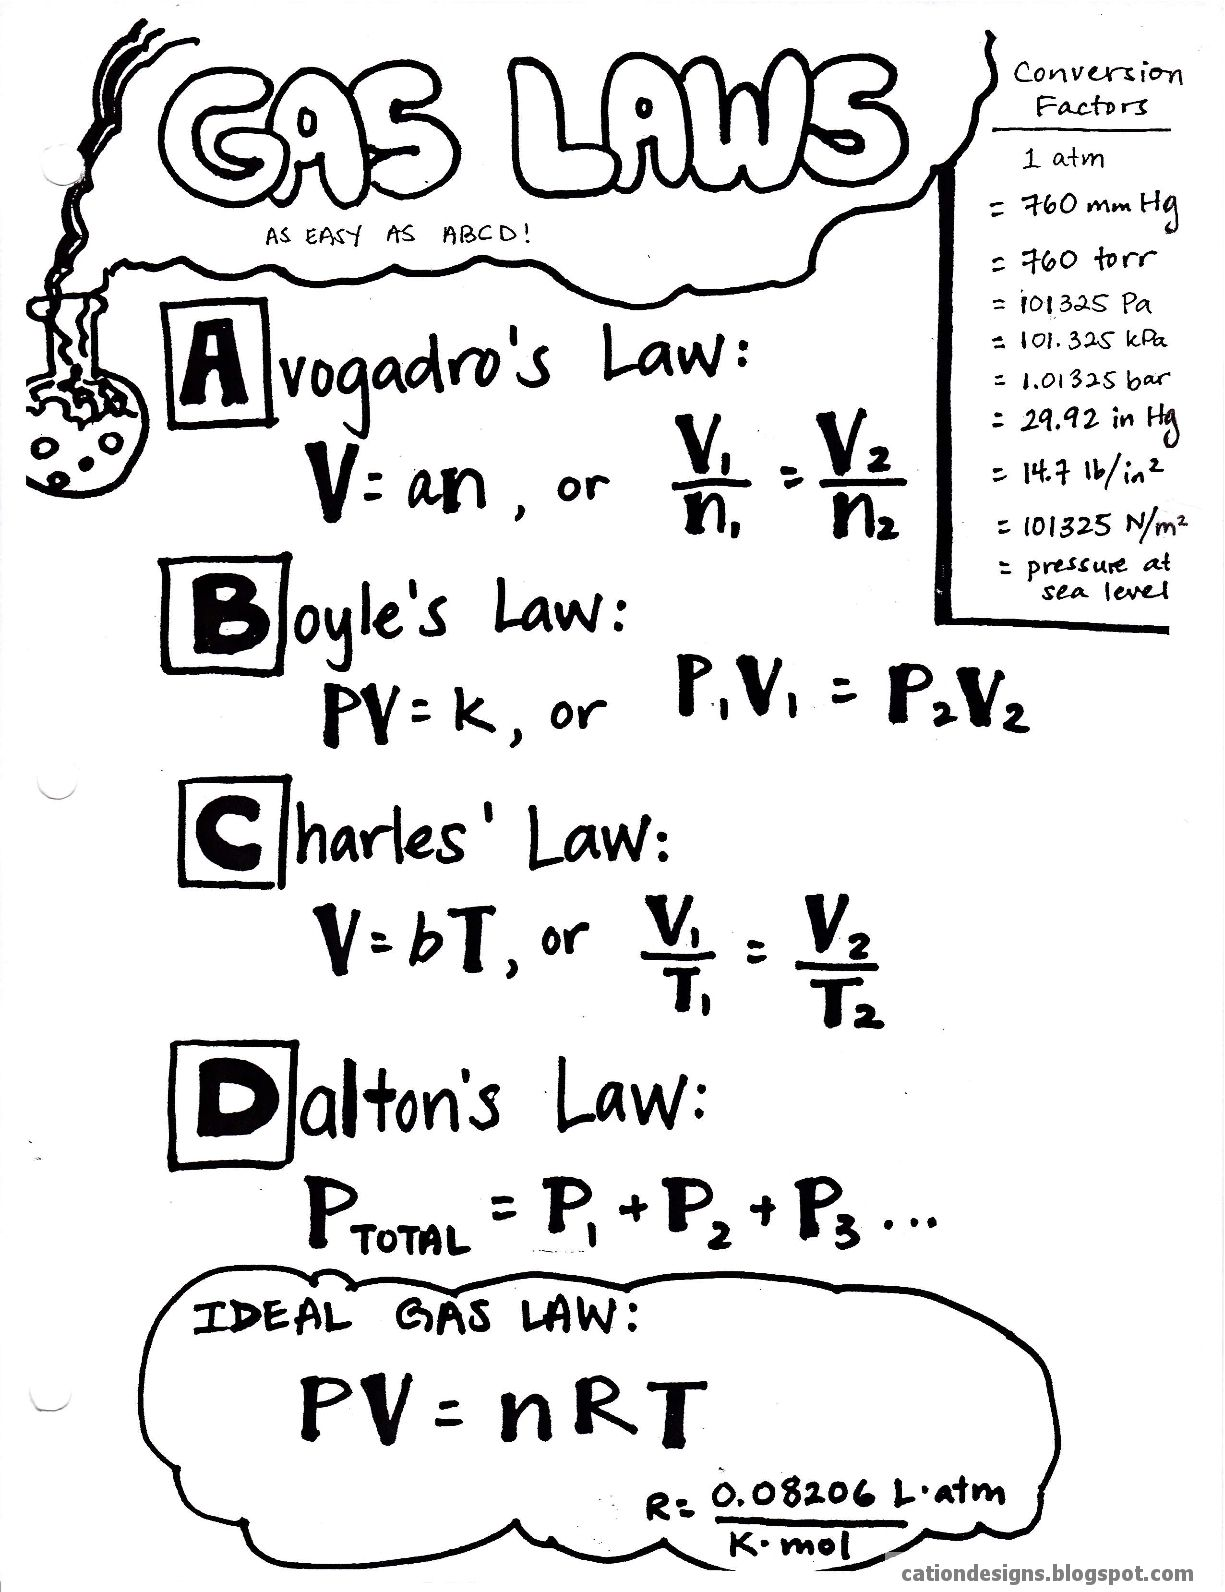 gas law problems Avogadro's law is a specific version of the ideal gas law it says equal volumes at equal temperatures of an ideal gas all have the same number of molecules.